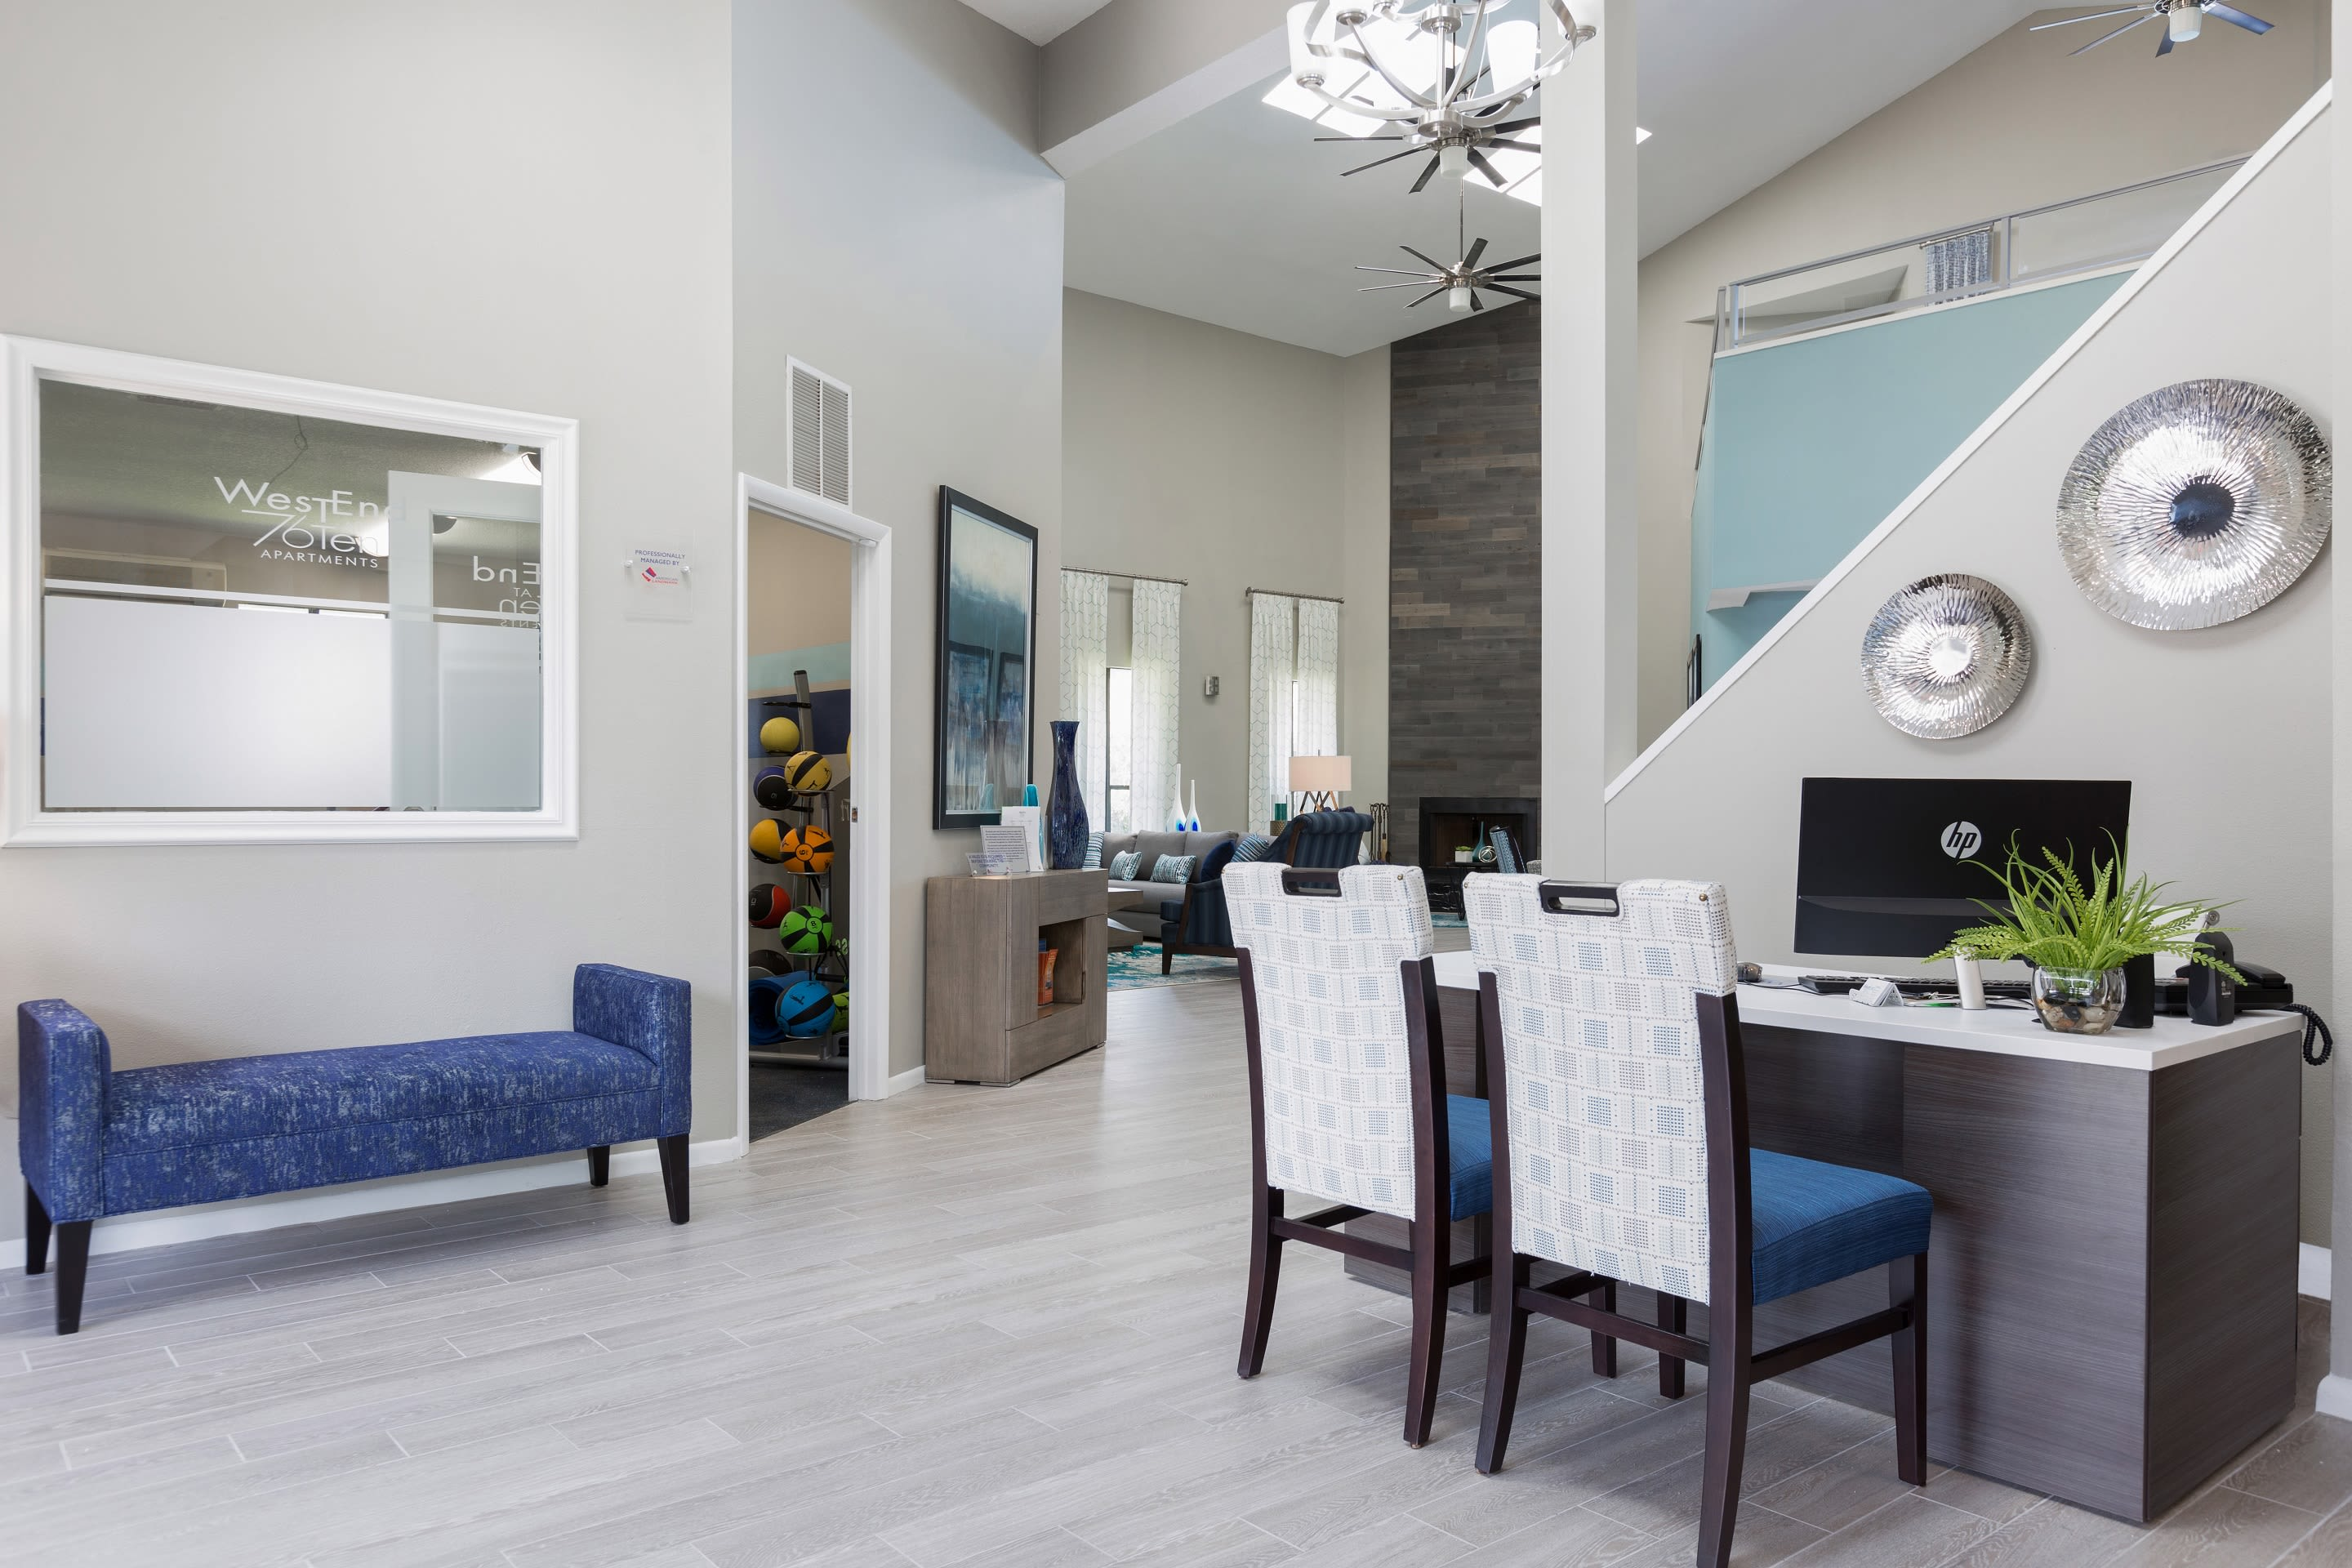 Town N Country Tampa, FL Apartments | WestEnd At 76Ten